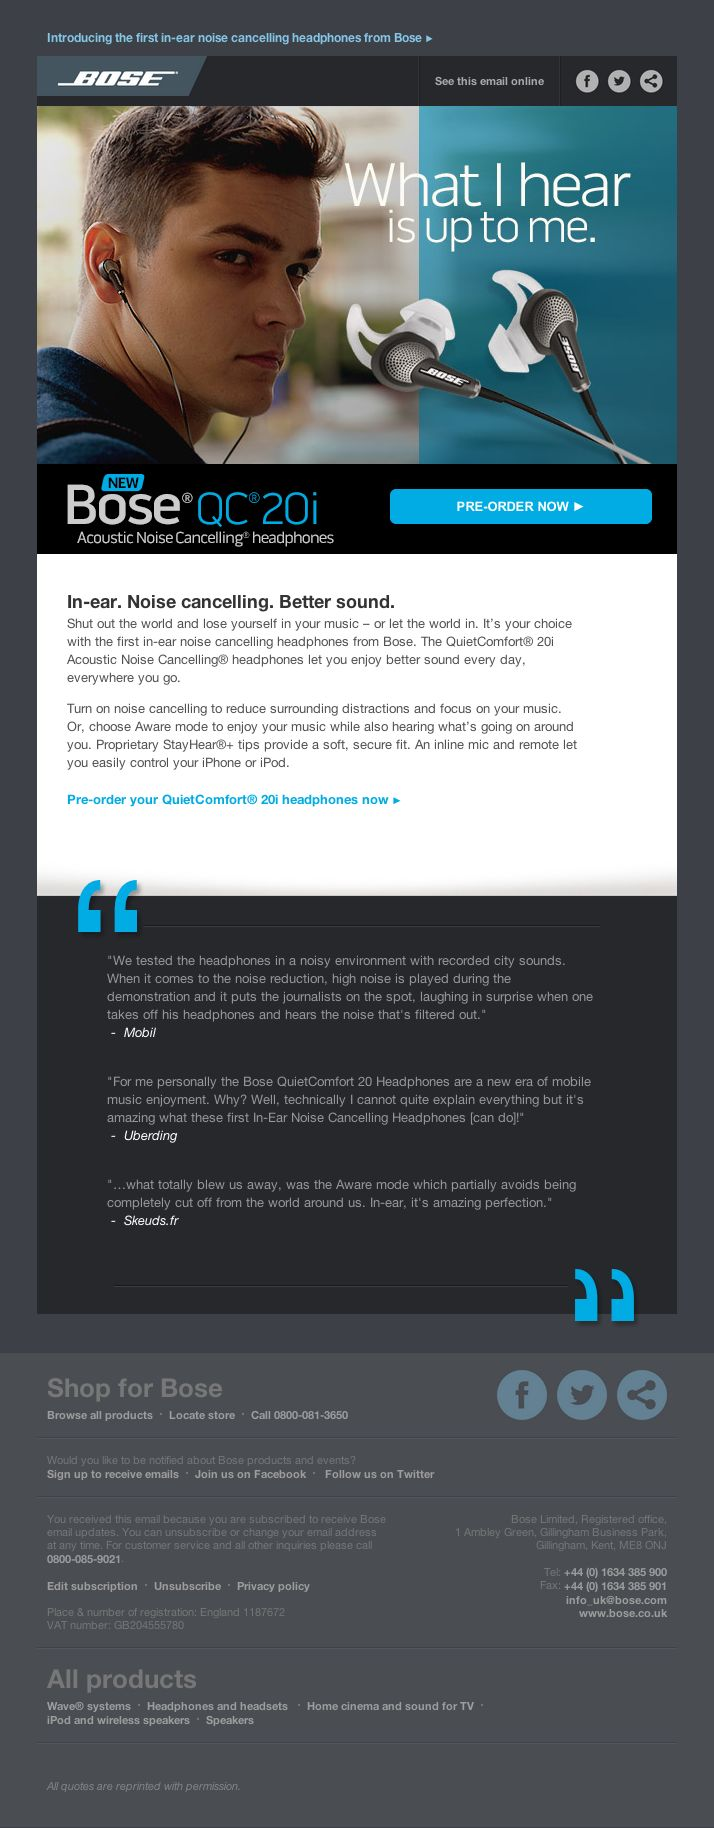 This email from sound lovers Bose certainly makes